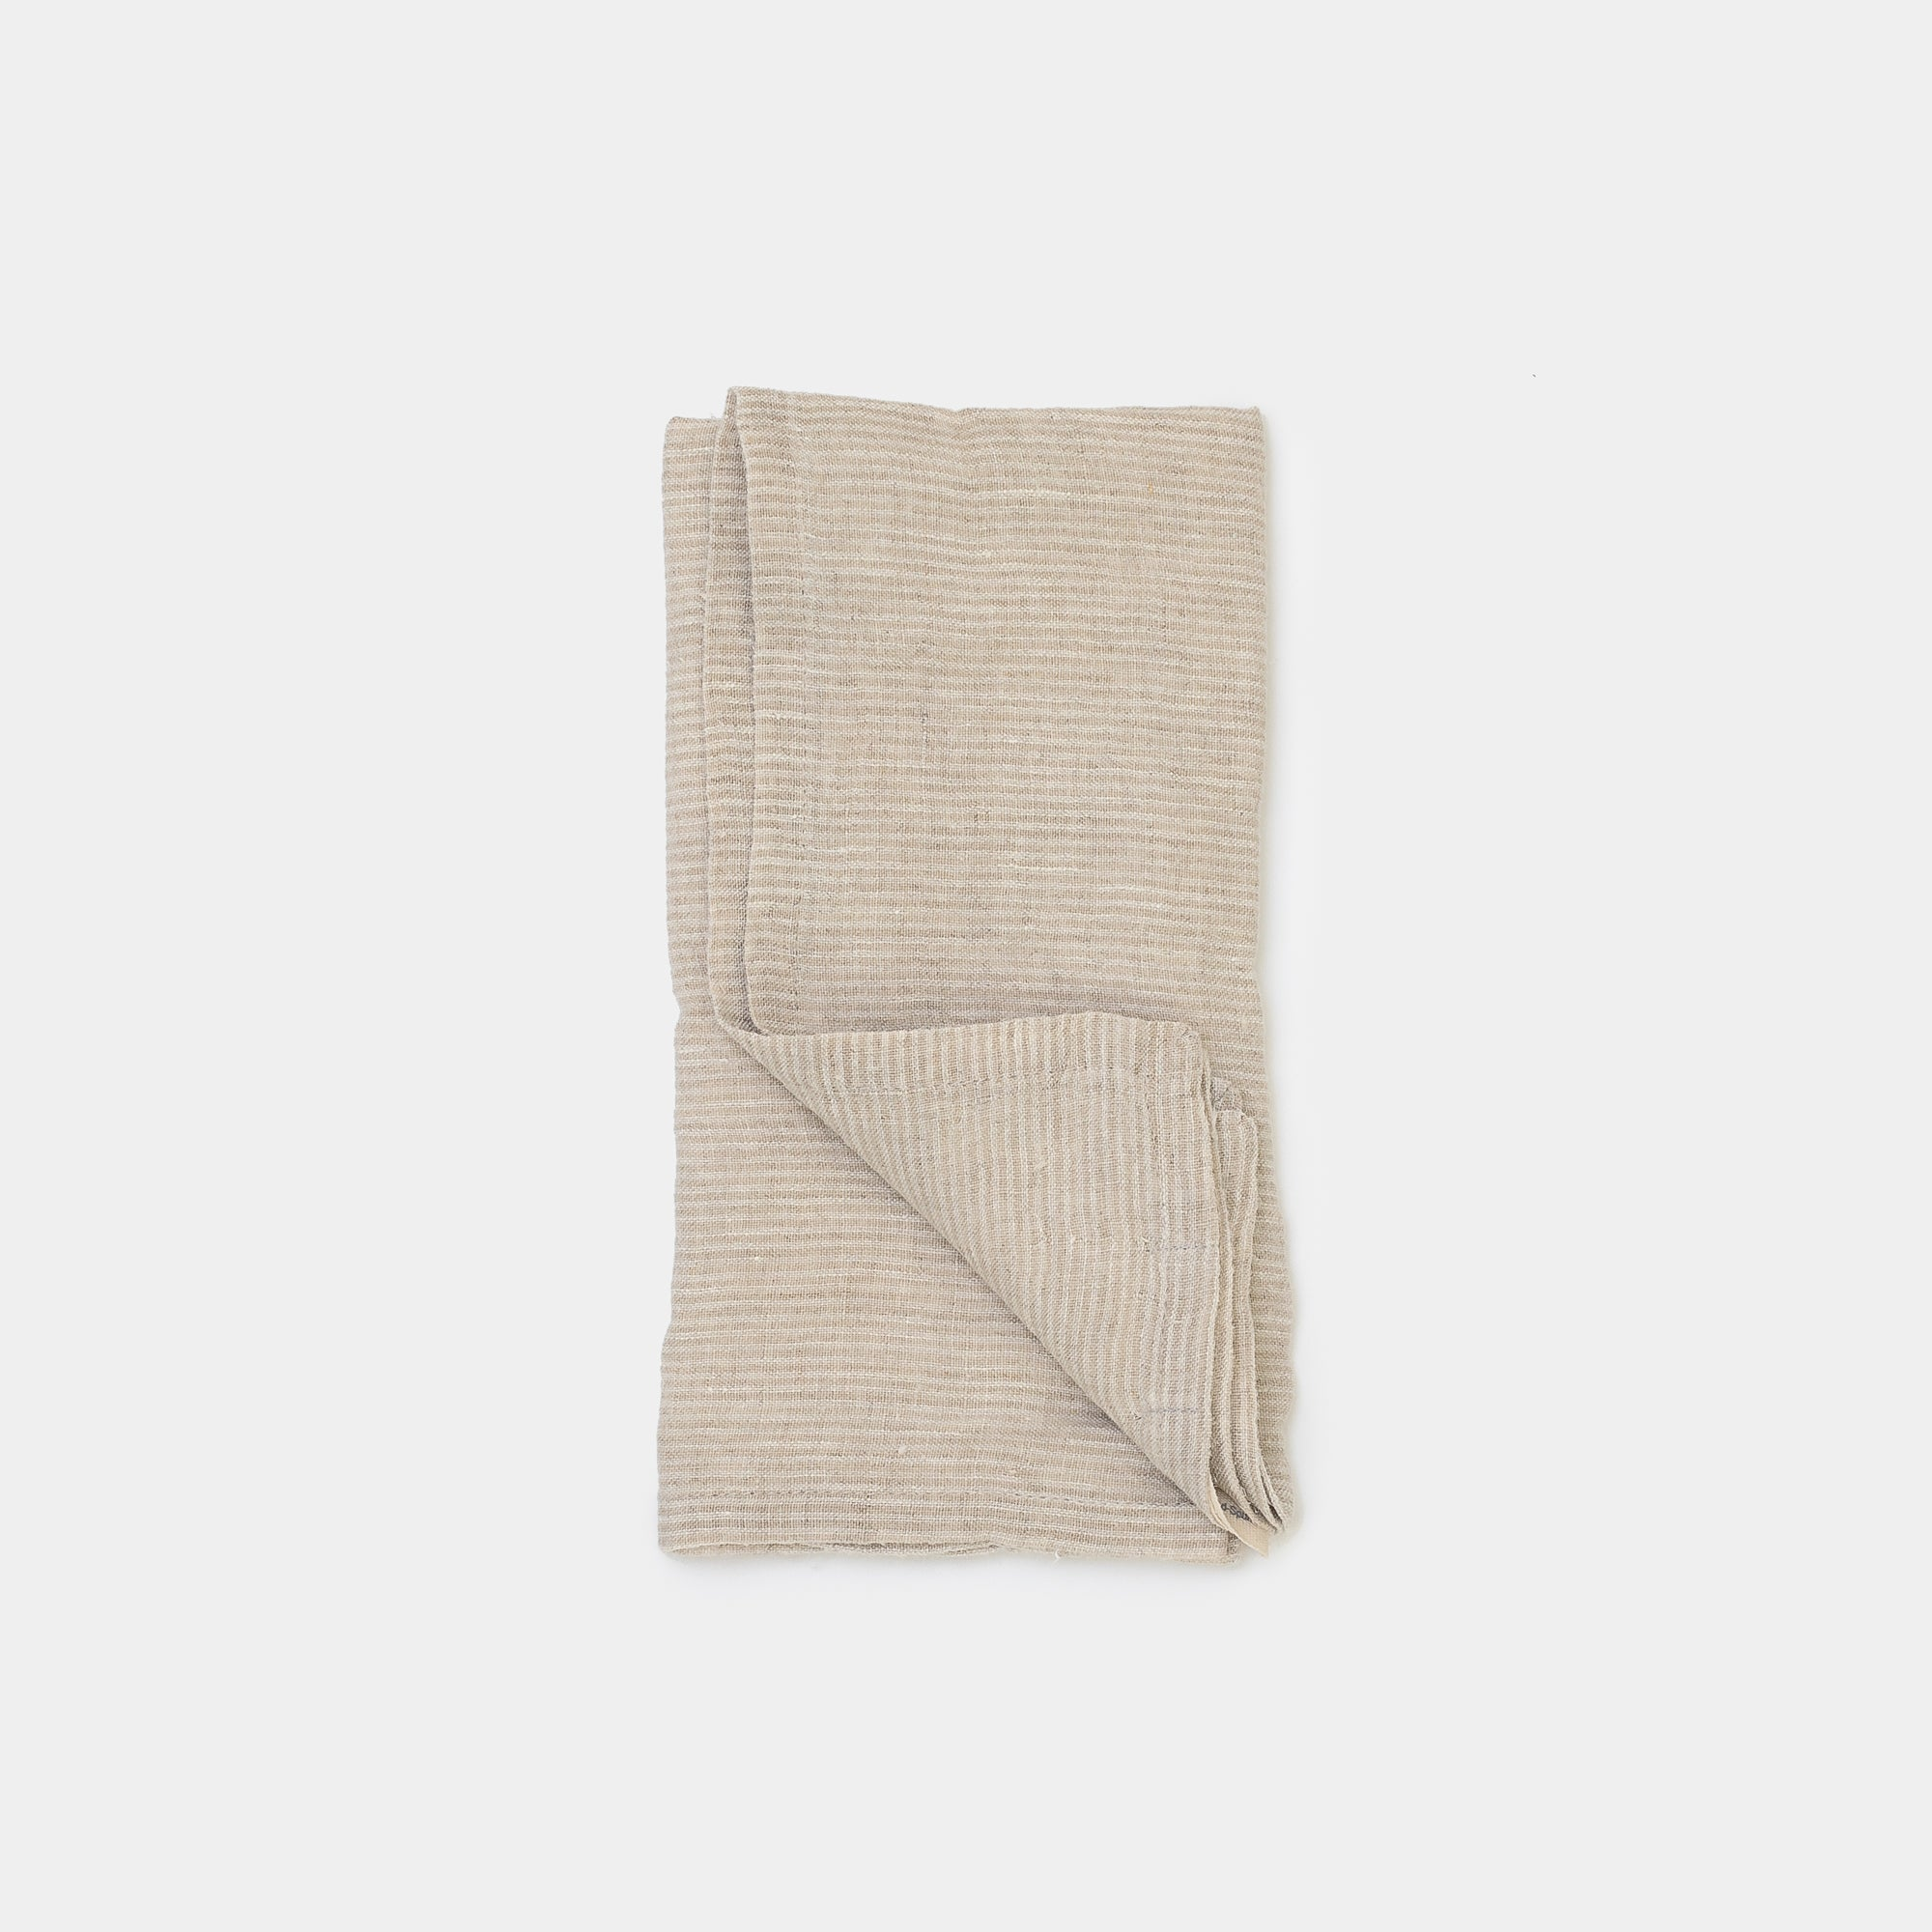 Pico Striped Tea Towel in Ivory